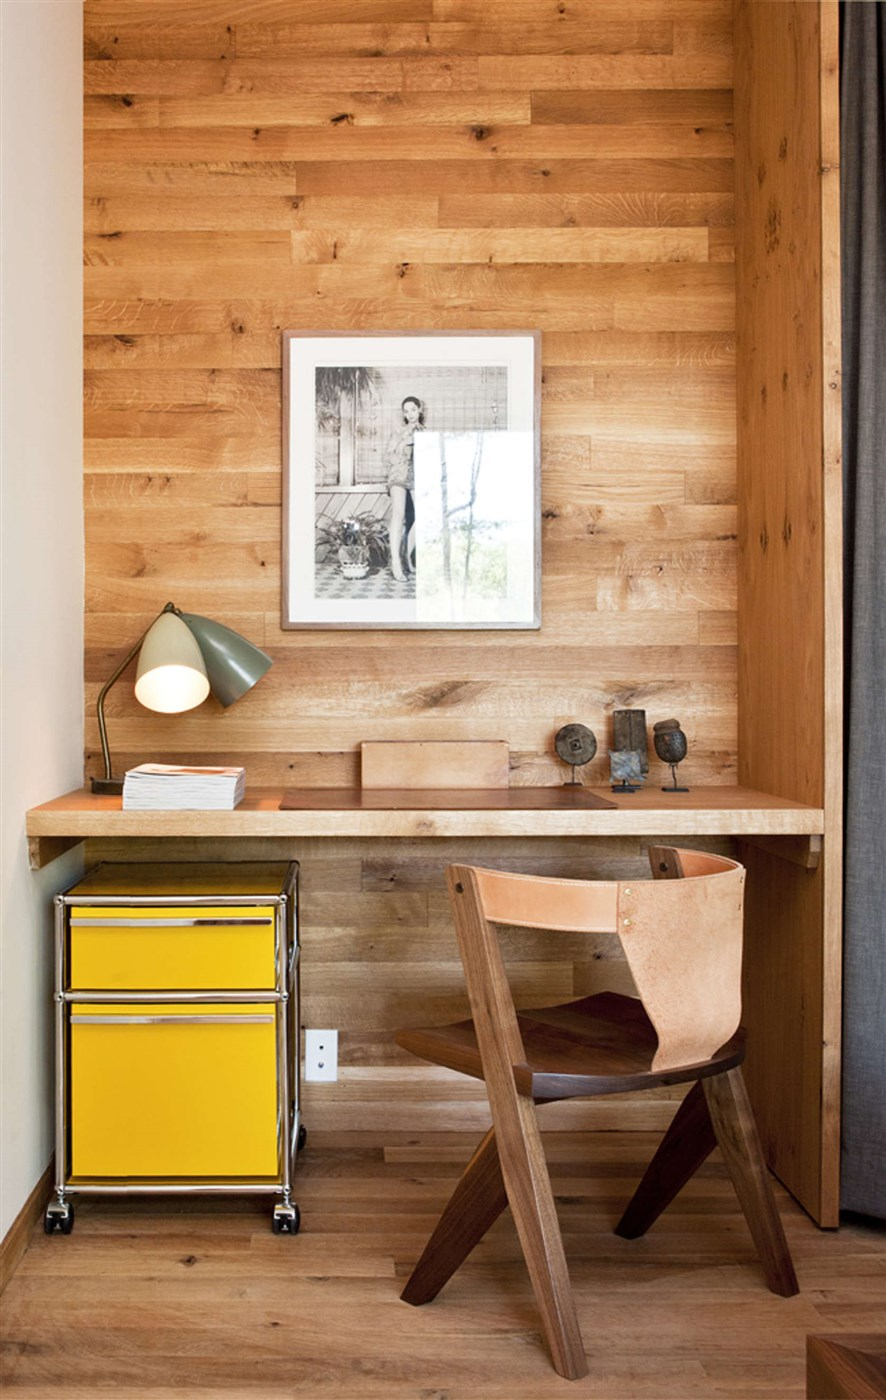 wood wall and floor, wooden chair and desk design ideas